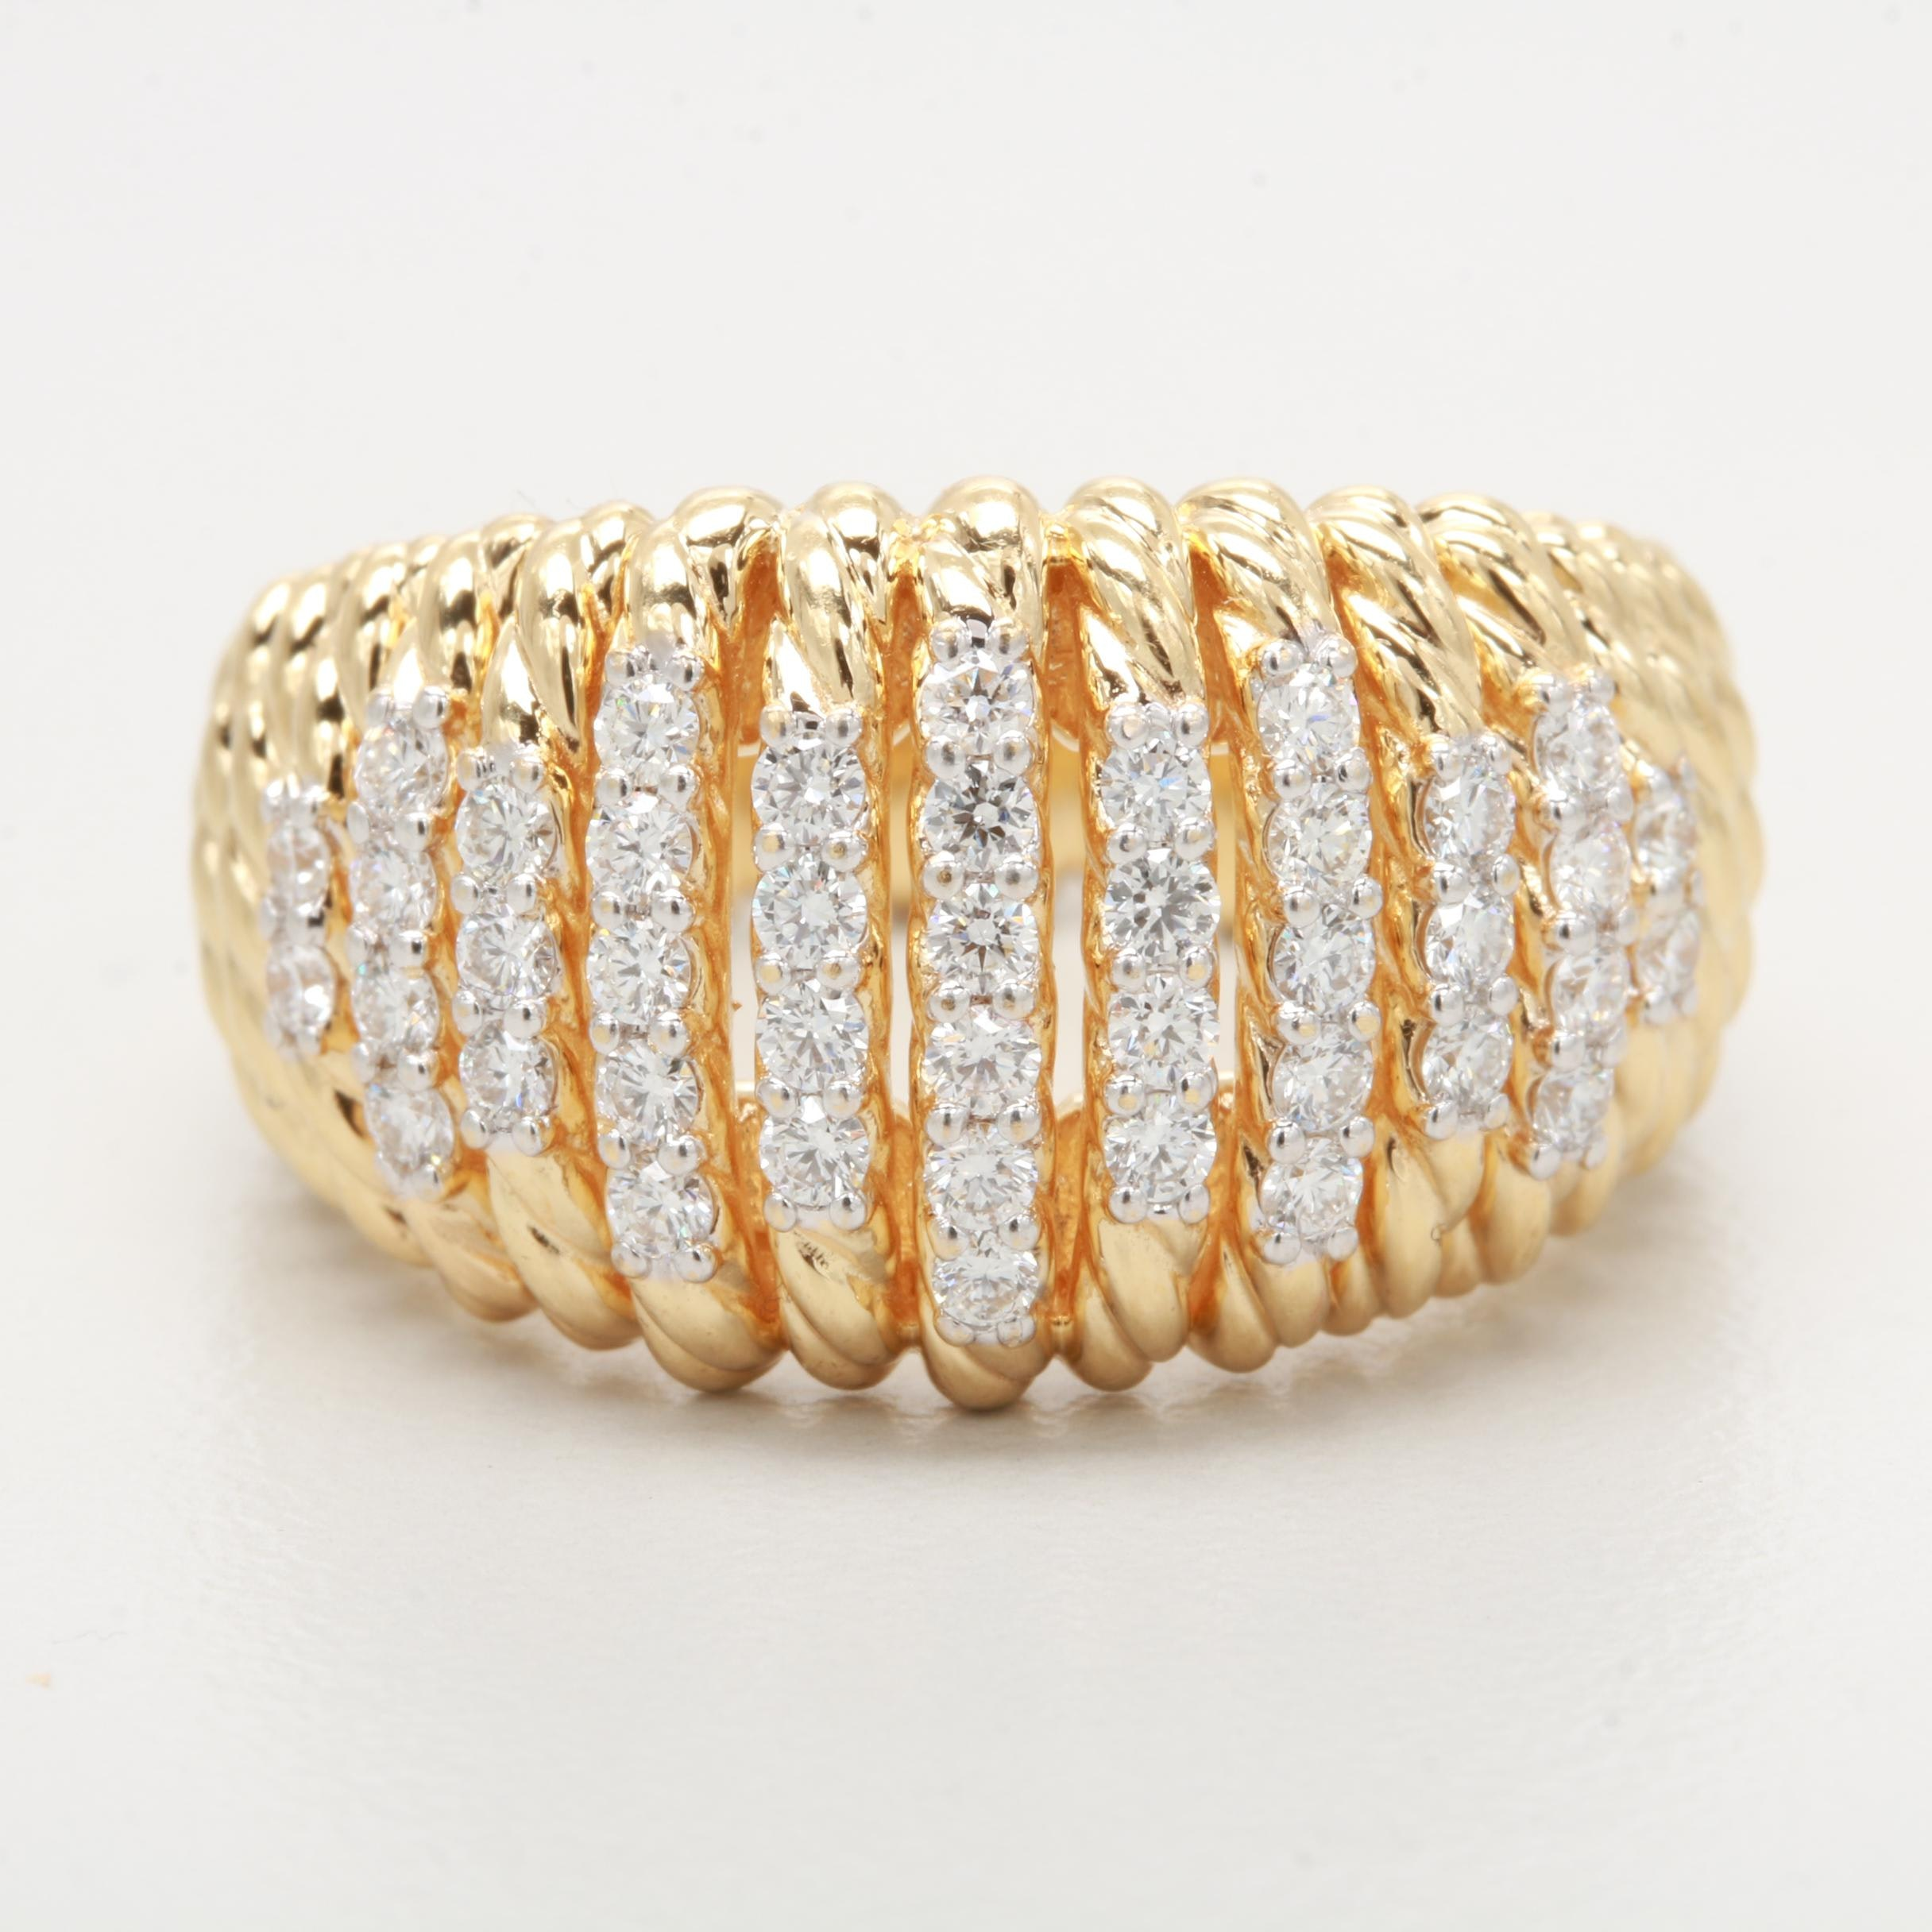 David Yurman 18K Yellow Gold 0.75 CTW Diamond Ring